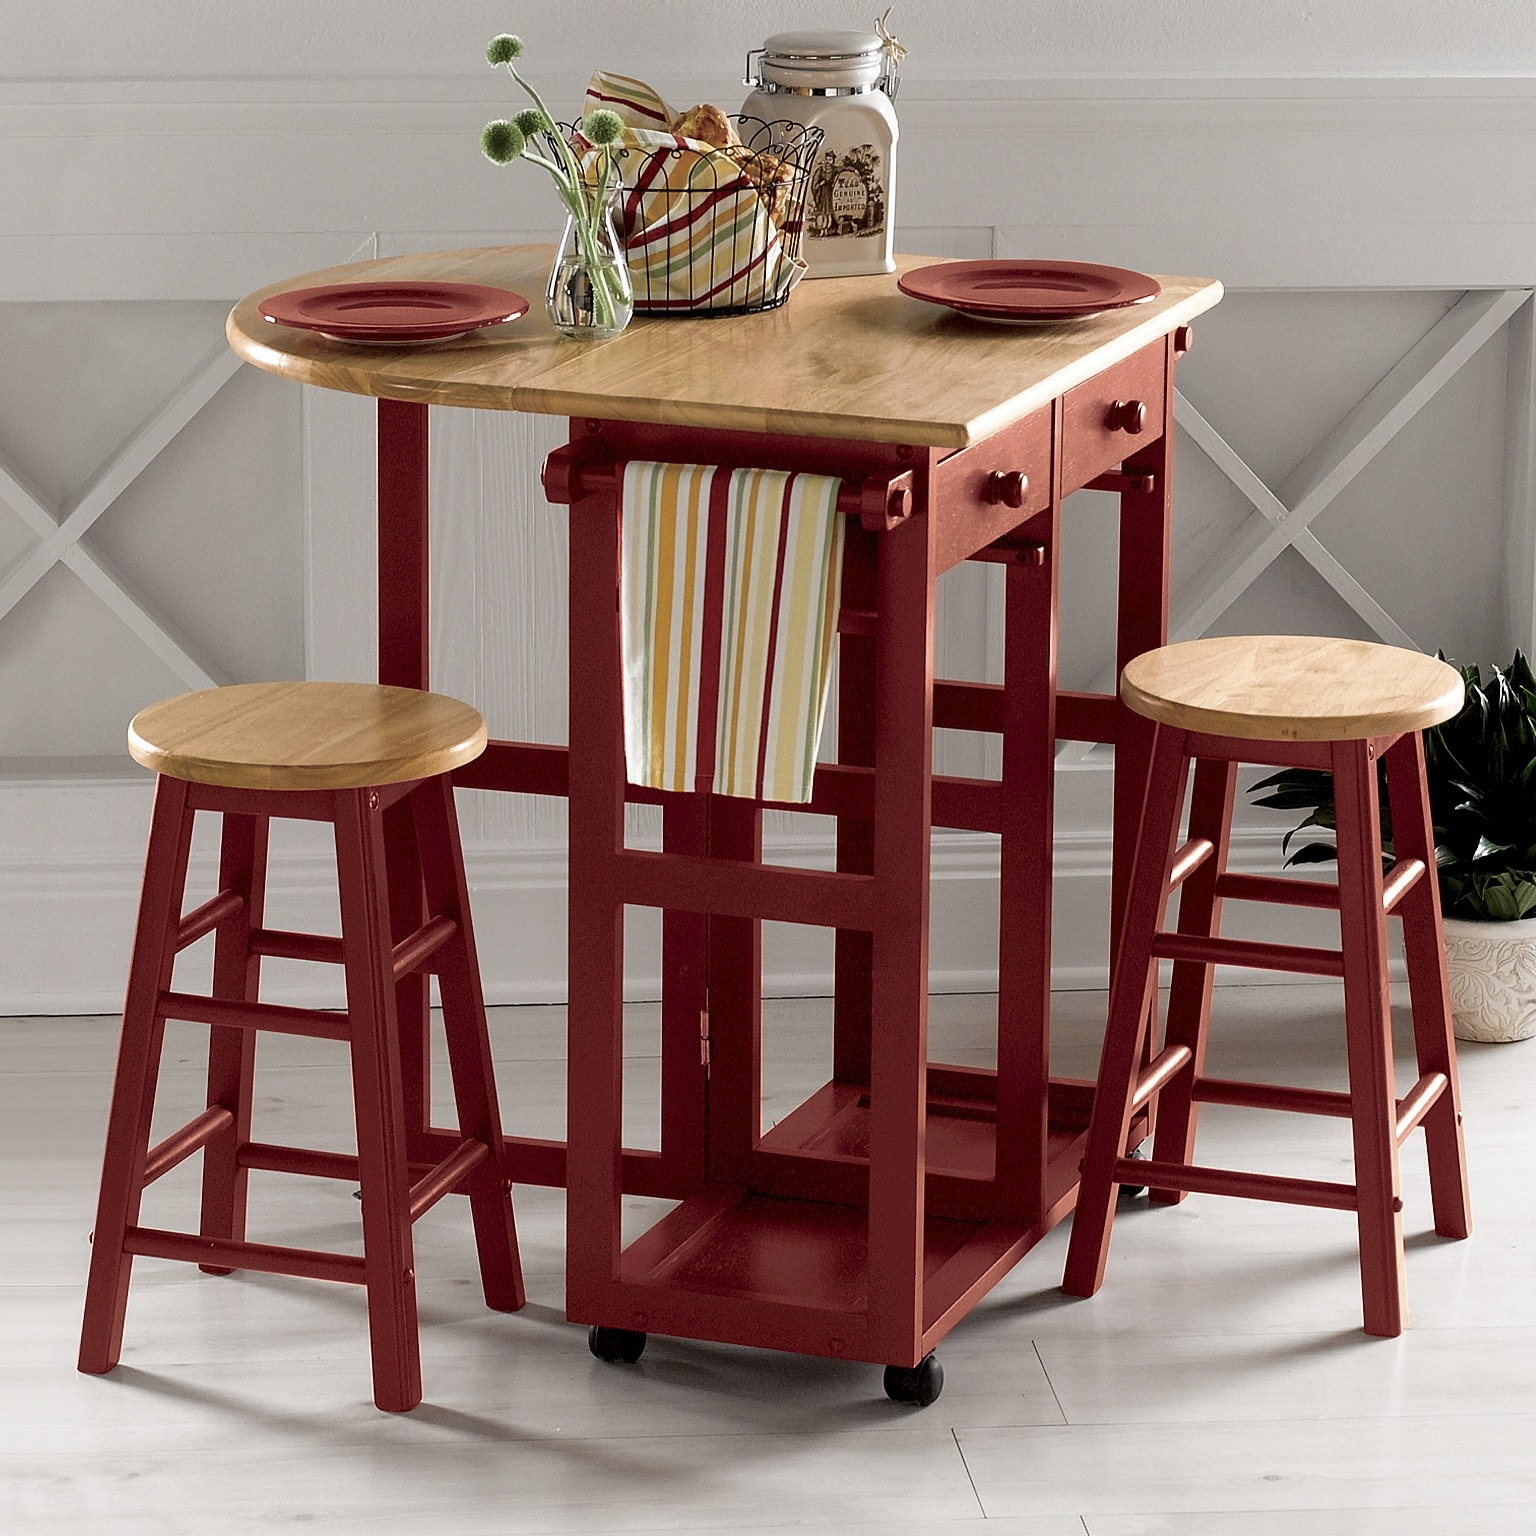 kitchen island stool cart ikea with stools seventh avenue